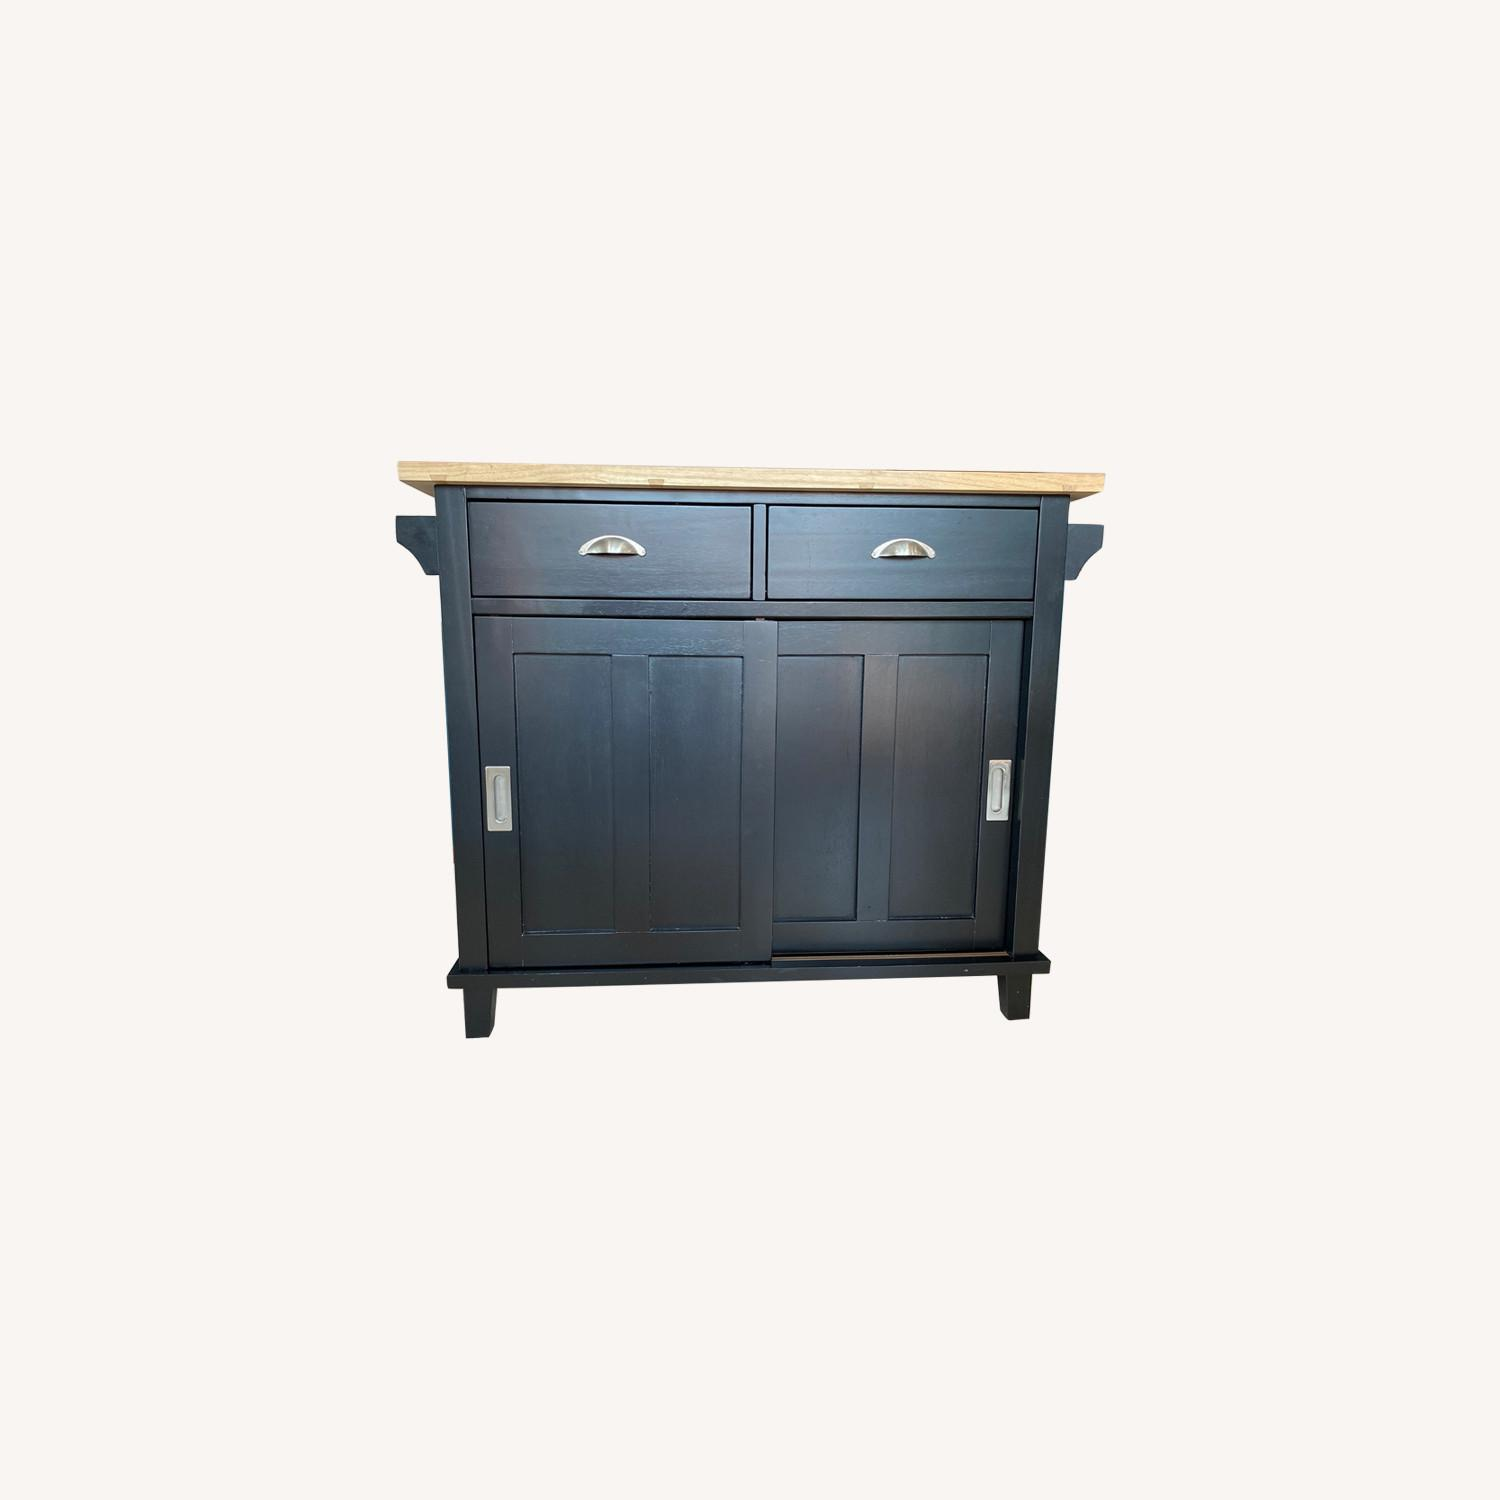 Crate & Barrel Belmont Black Kitchen Island - image-0